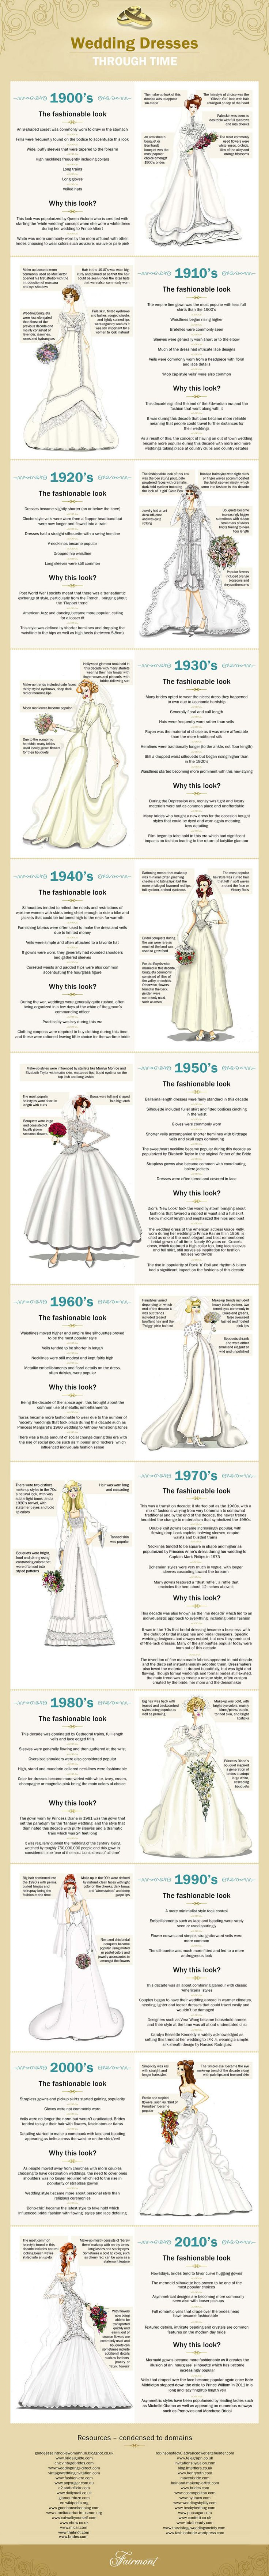 Lucky for us, illustrator Shireen Baker has created an incredible graphic displaying how much wedding dresses have changed each decade since the 1900s: